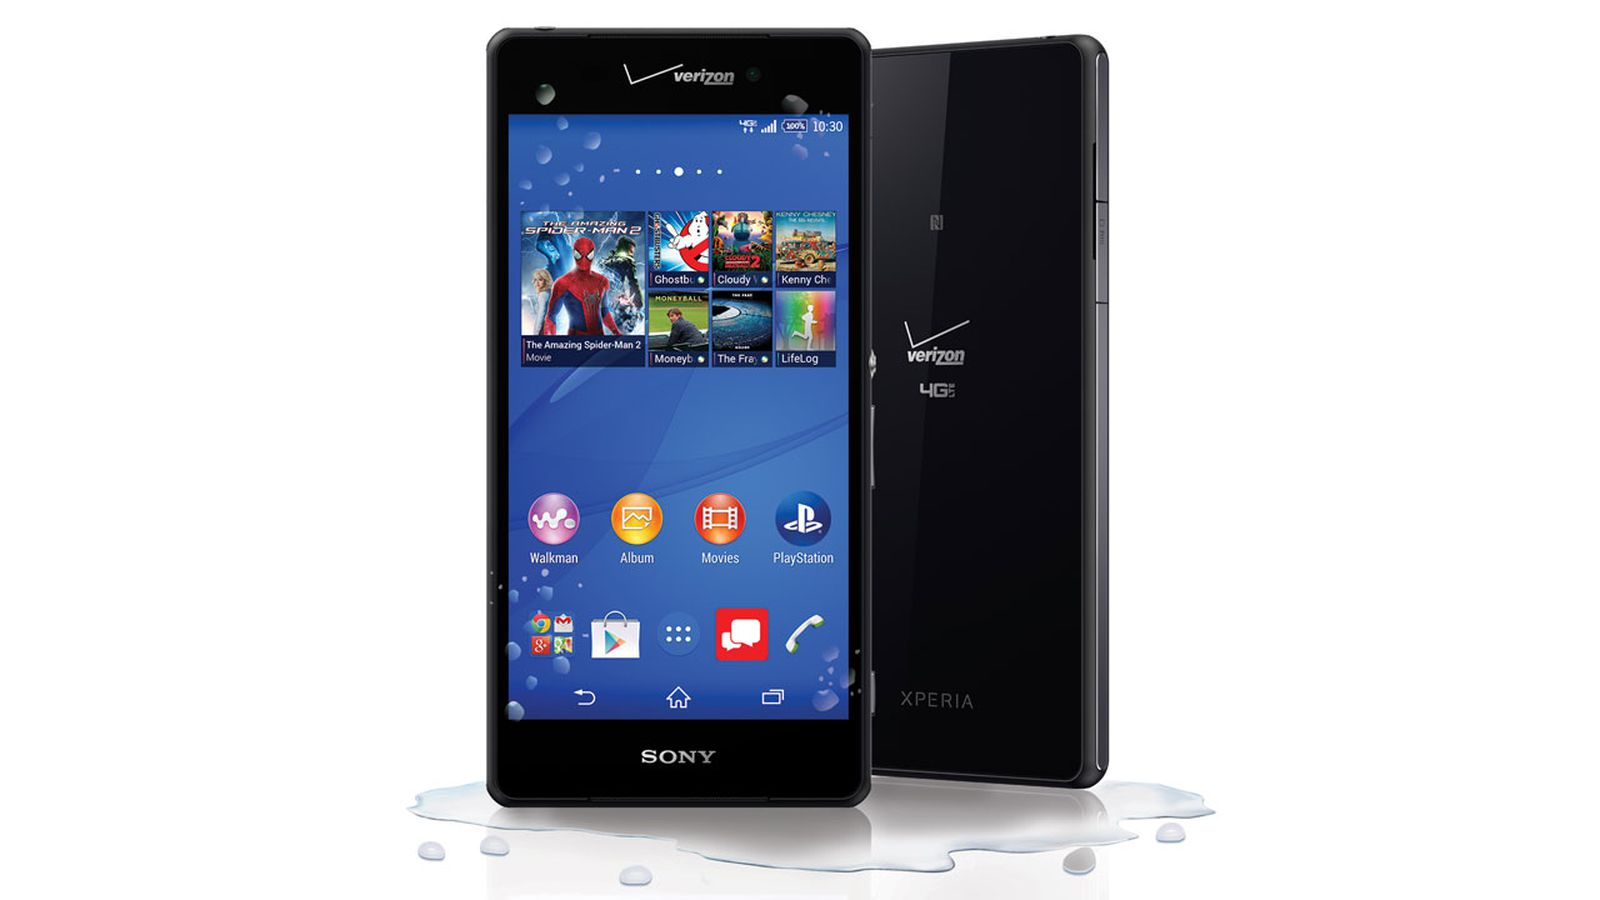 Sonys New Ps4 Remote Play Smartphone Hits Us On Oct 23 Polygon Sony Xperia Z3 Compact Seken